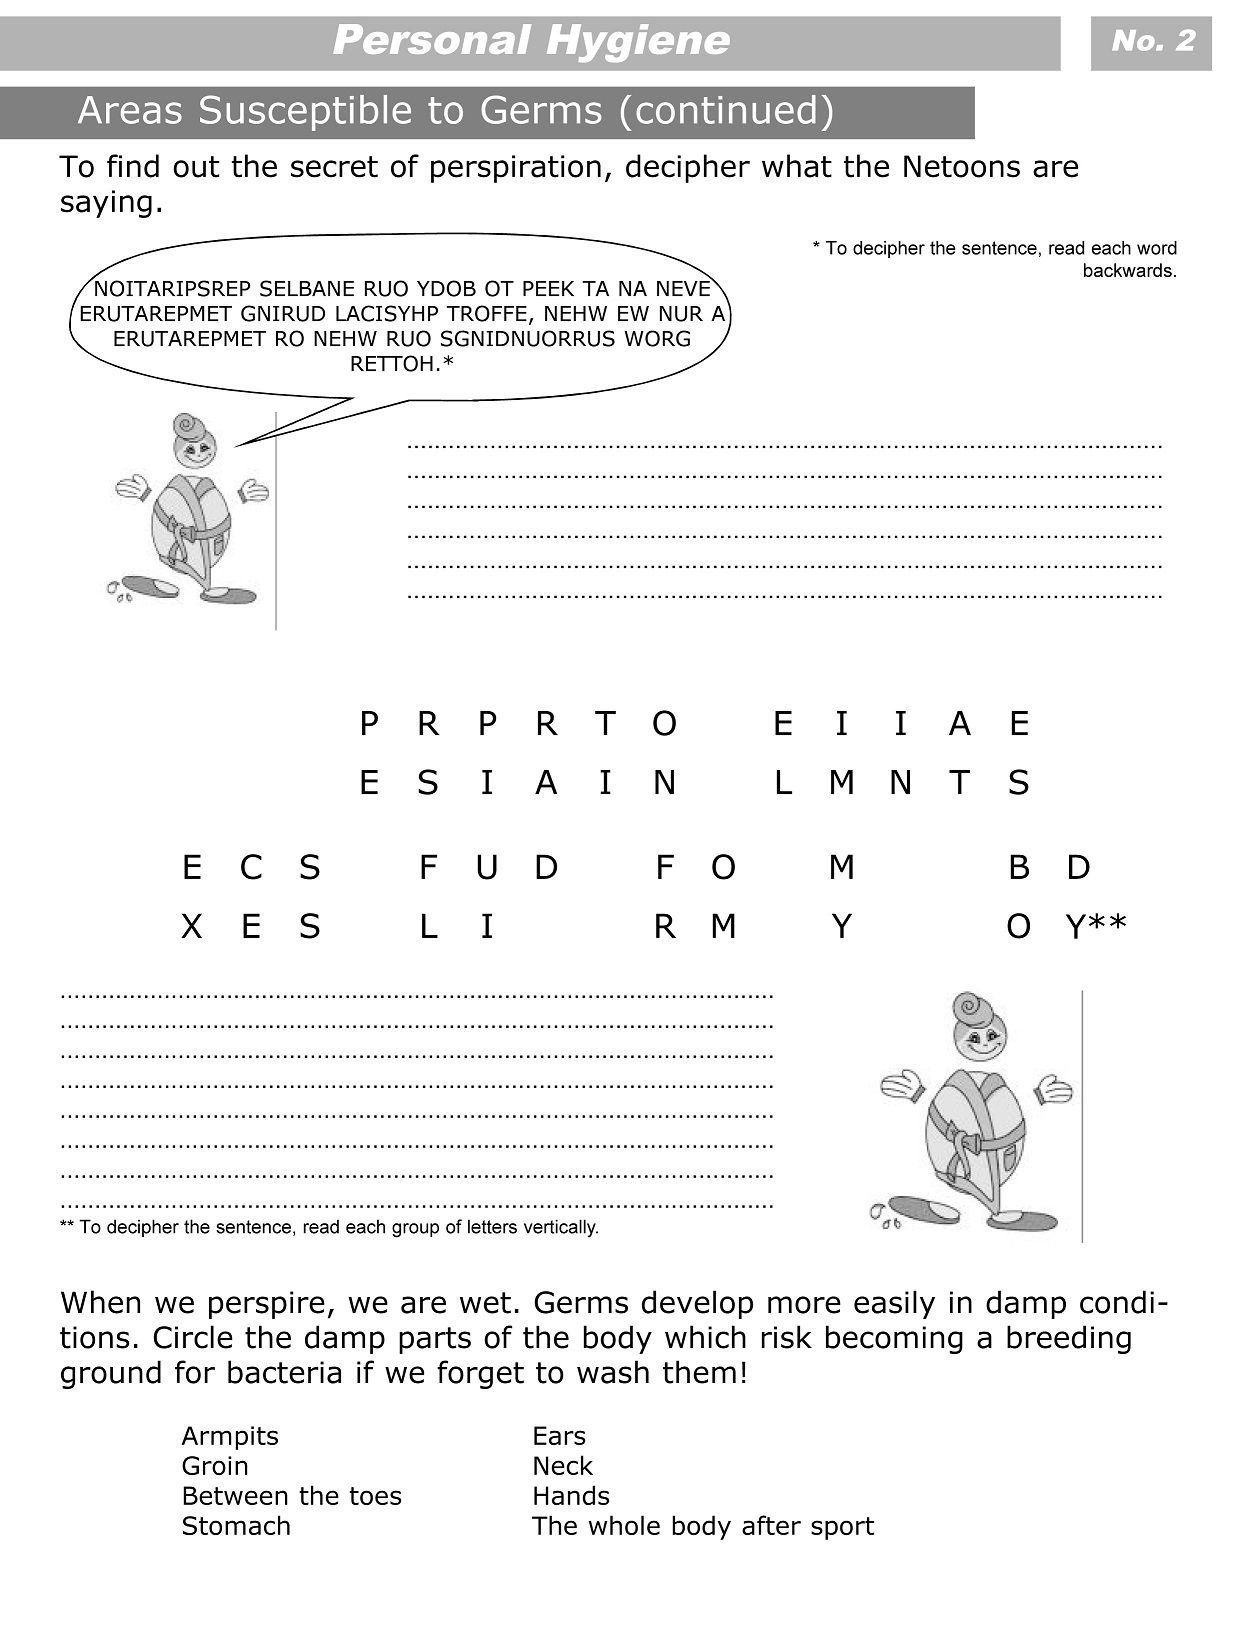 Personal Hygiene Worksheets For Kids Level 3 2 | Girls Guards - Free Printable Personal Hygiene Worksheets